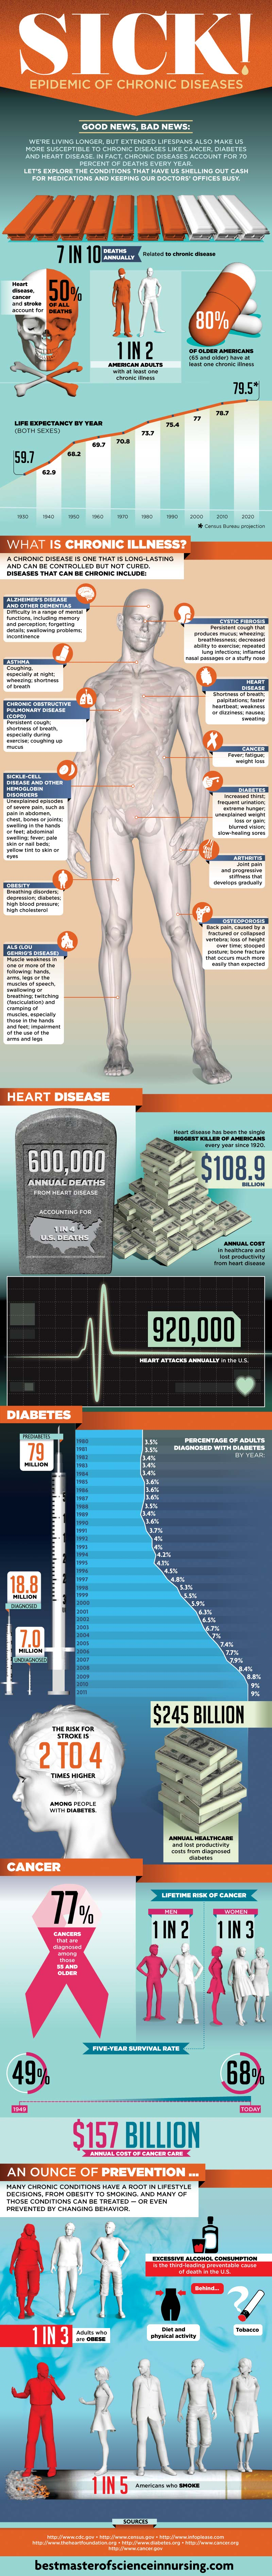 Chronic Disease Statistics-Infographic